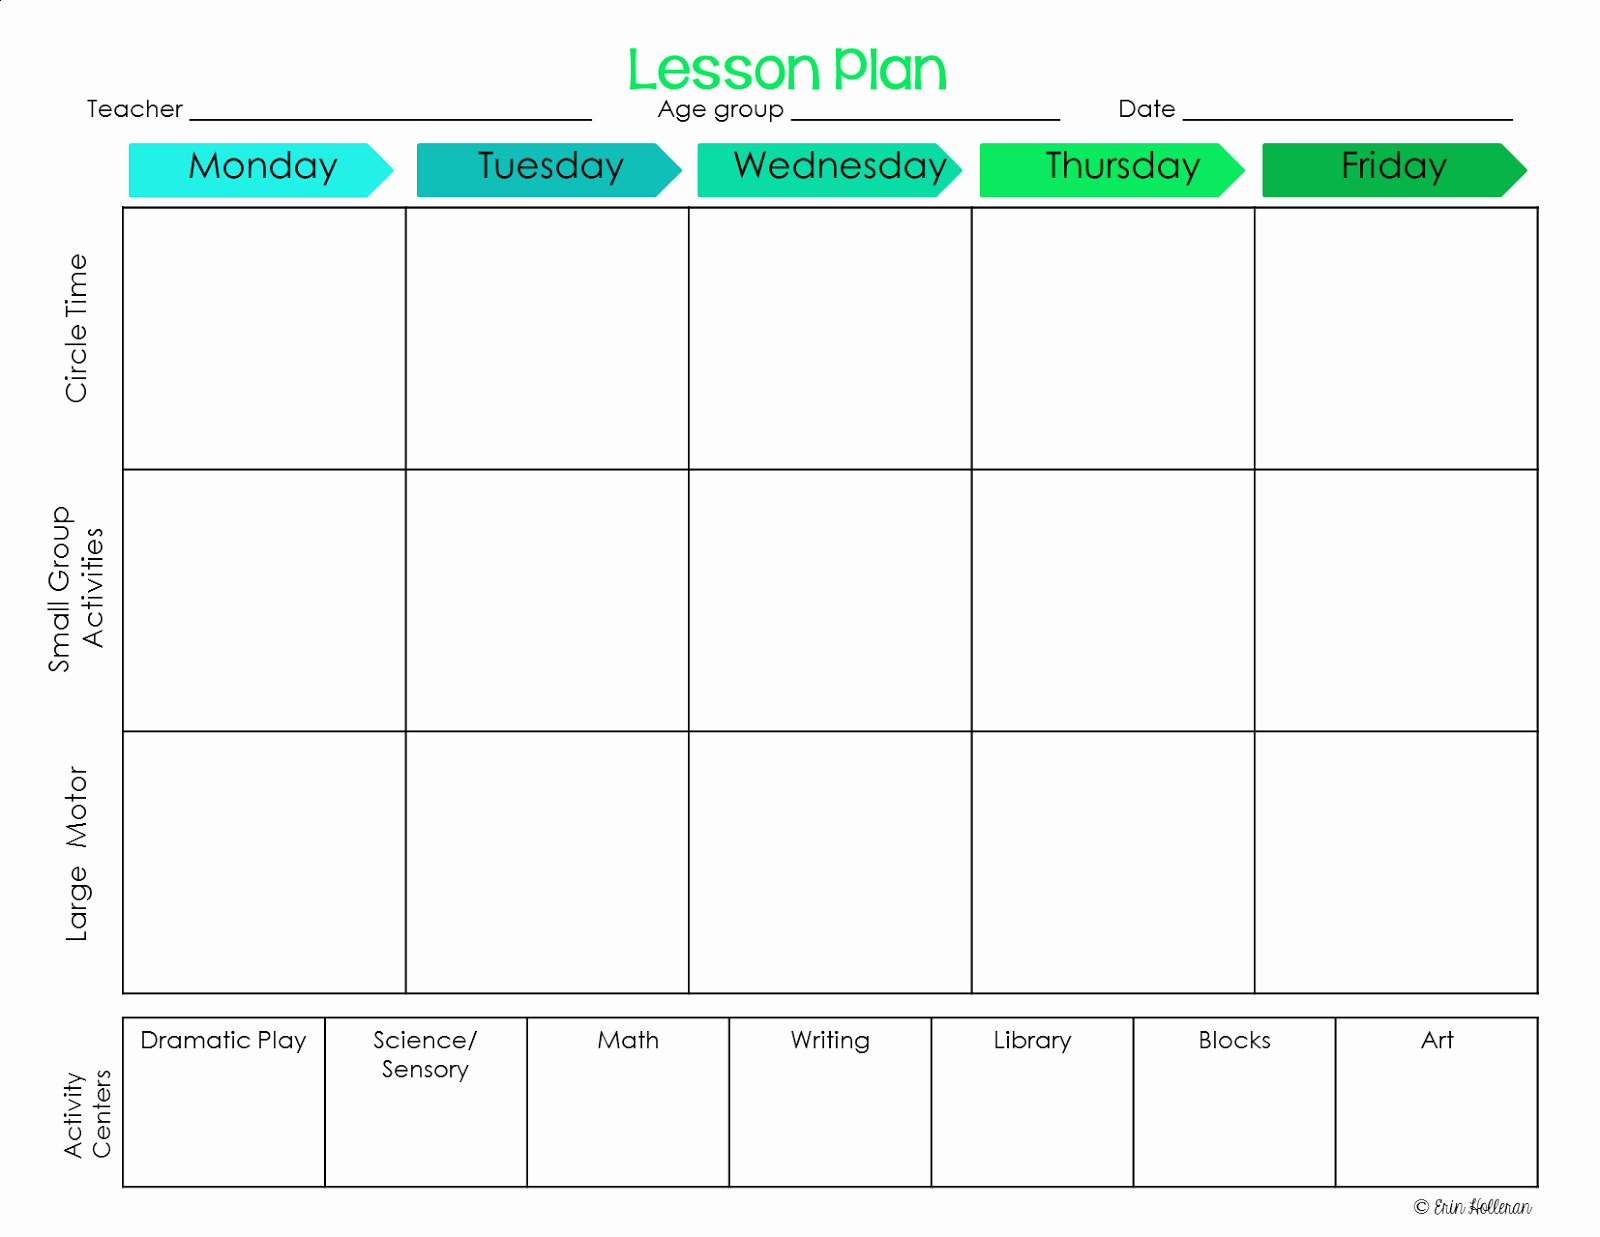 Preschool Lesson Plan Template Awesome Preschool Ponderings Make Your Lesson Plans Work for You